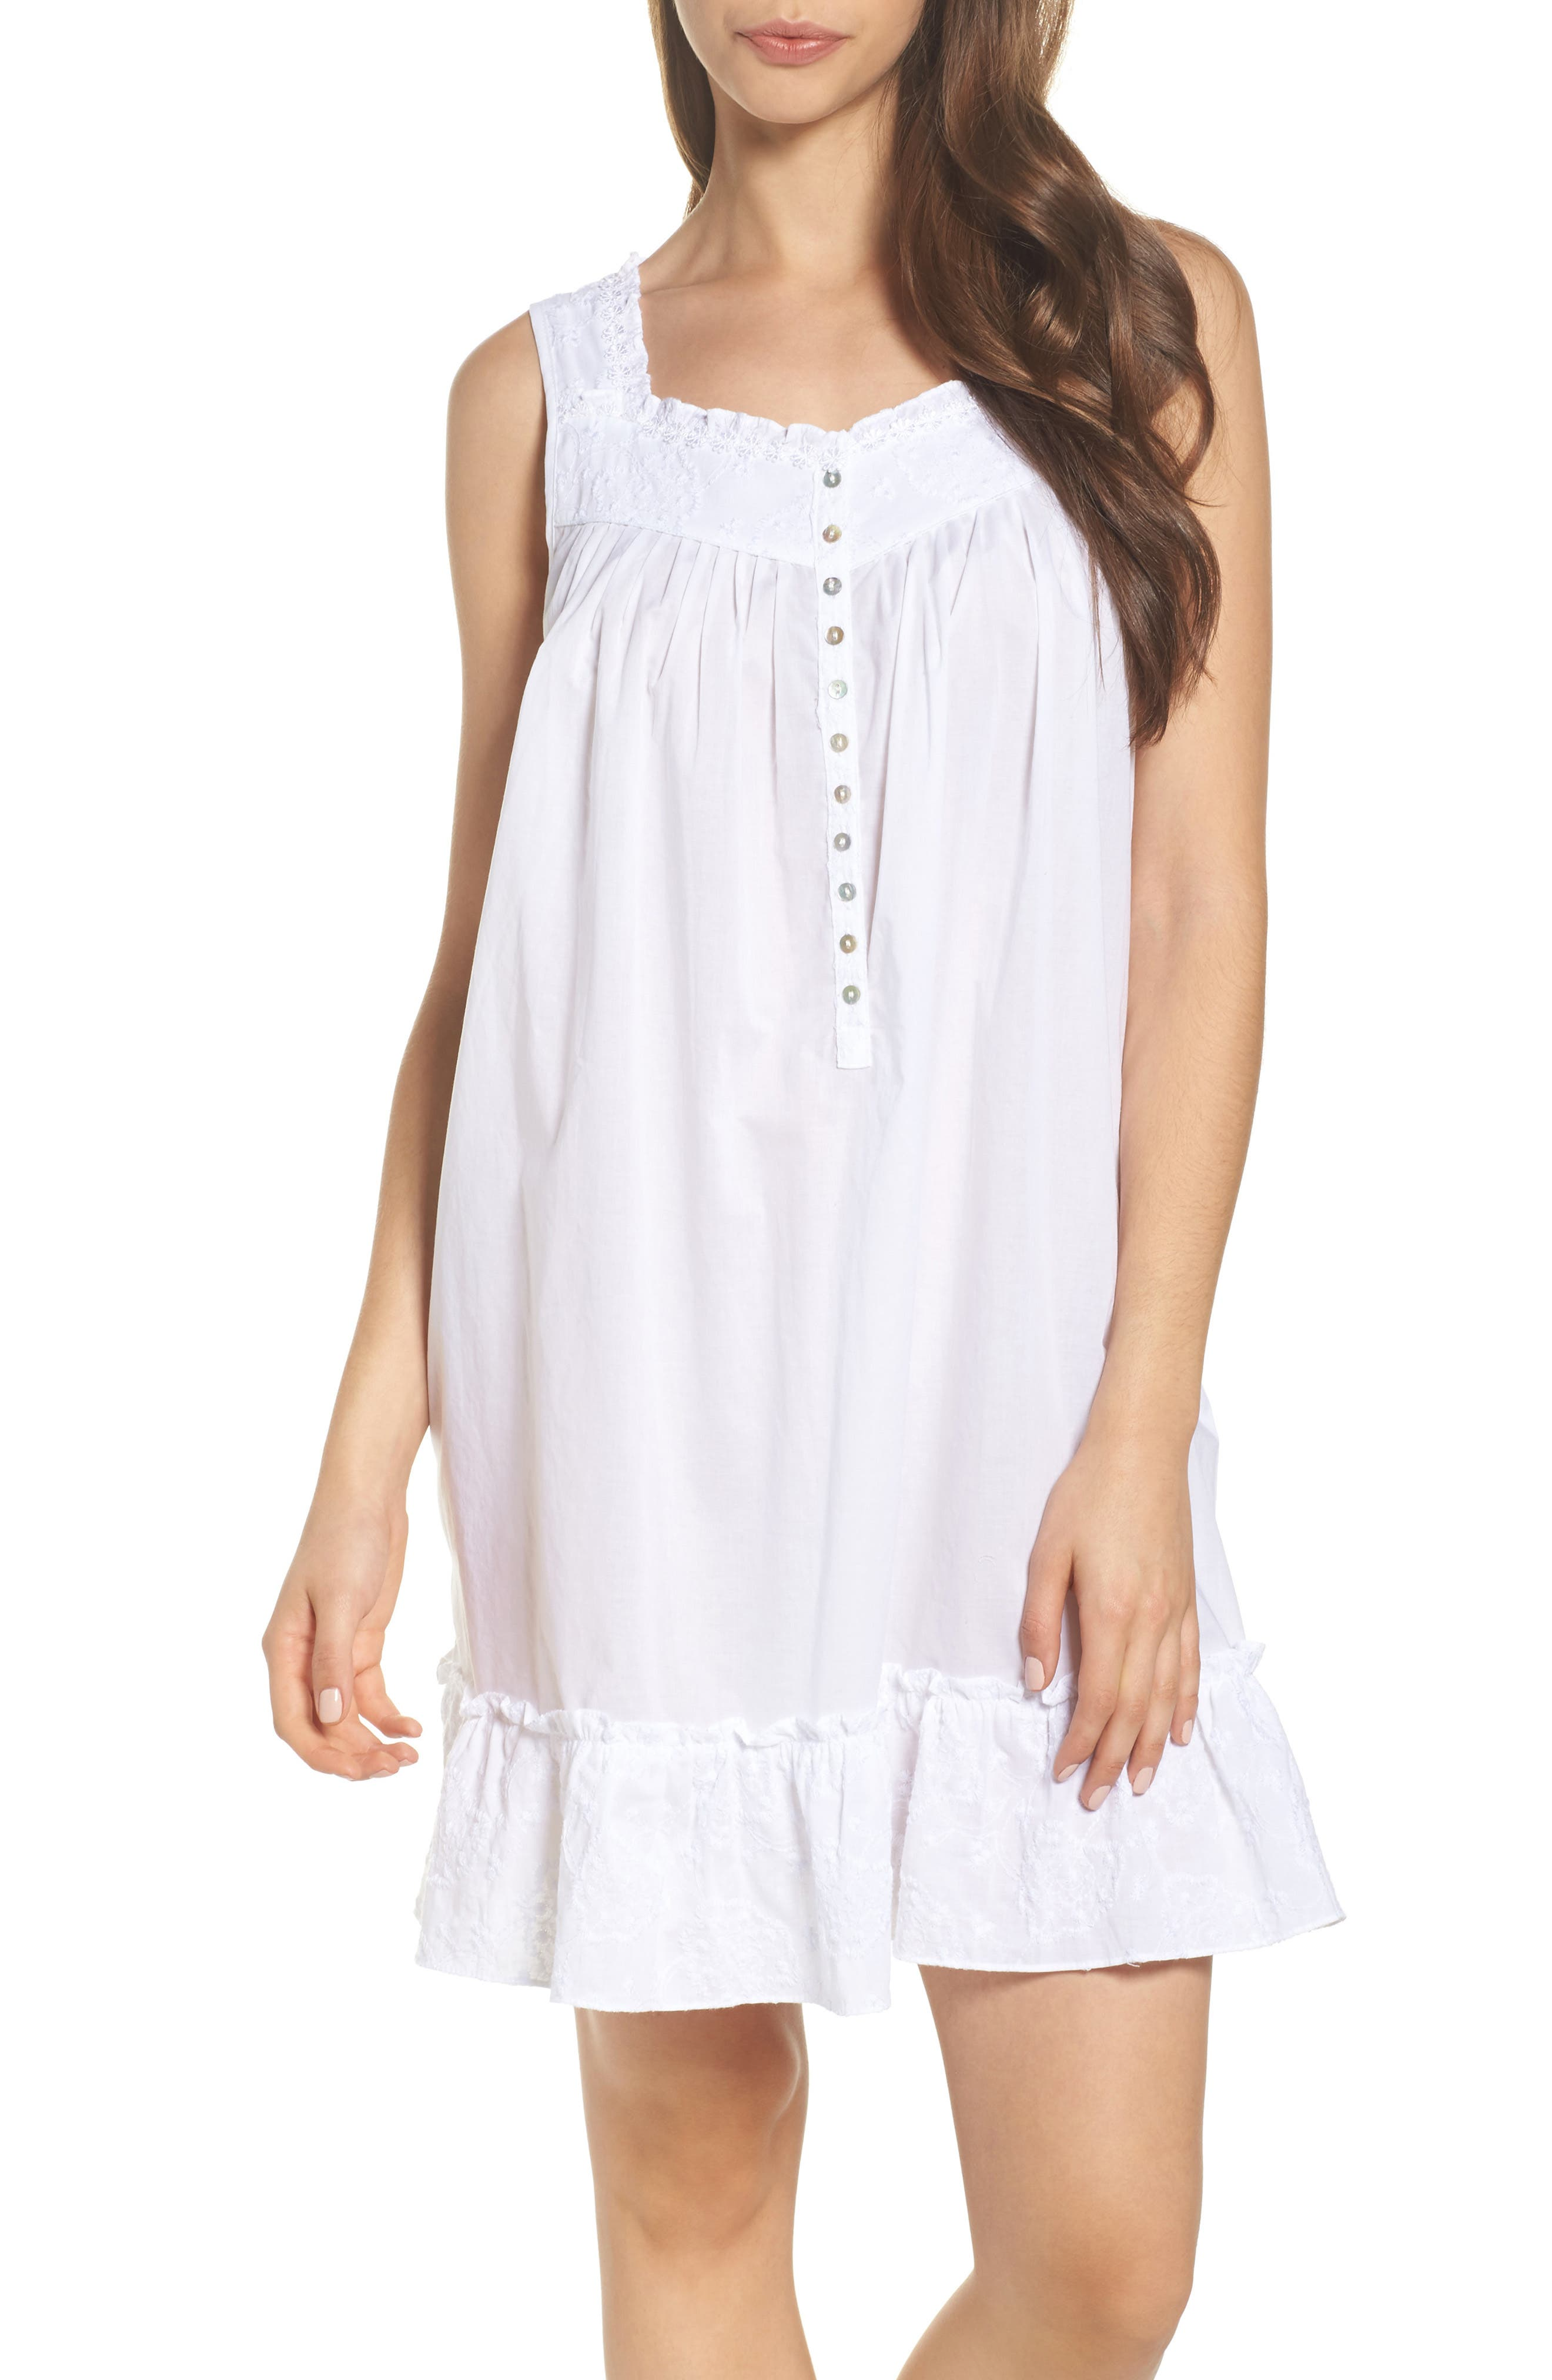 Embroidered Cotton Nightgown,                         Main,                         color, White Floral Embroidery